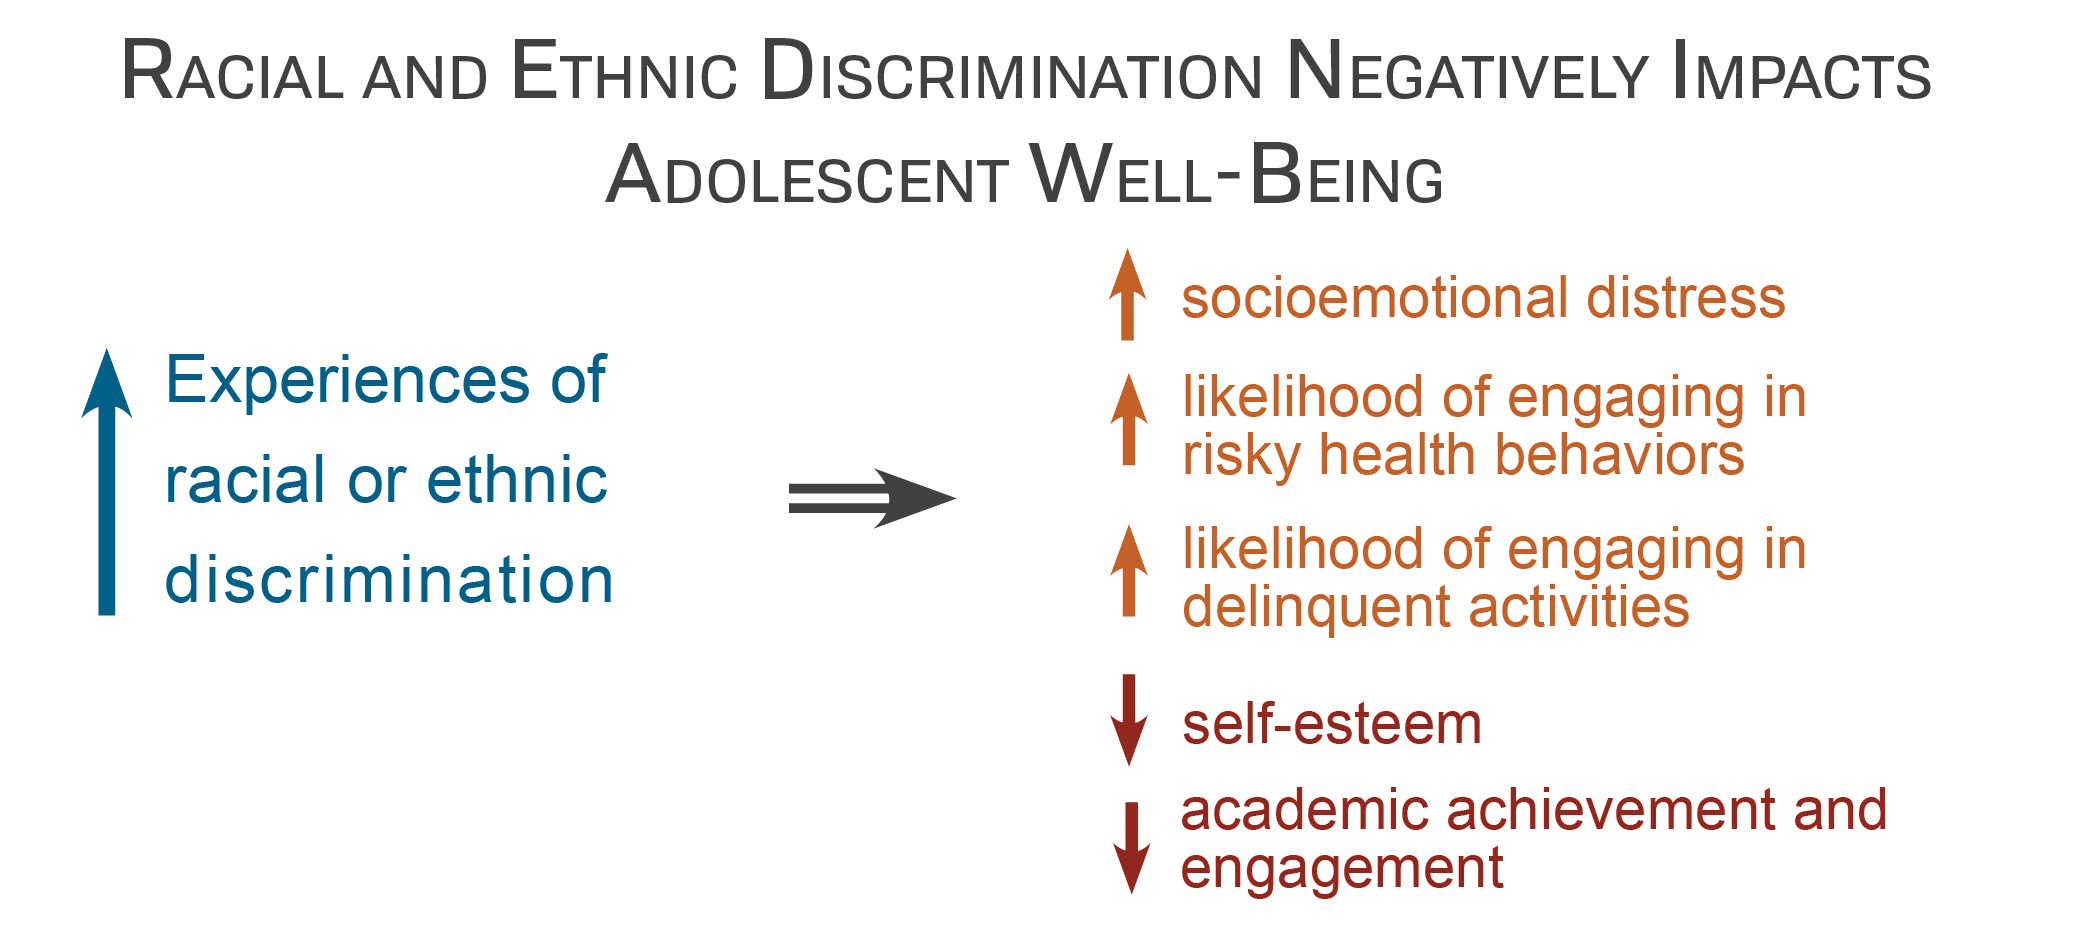 Impact of Racial and Ethnic Discrimination on the Well-Being of Adolescents.